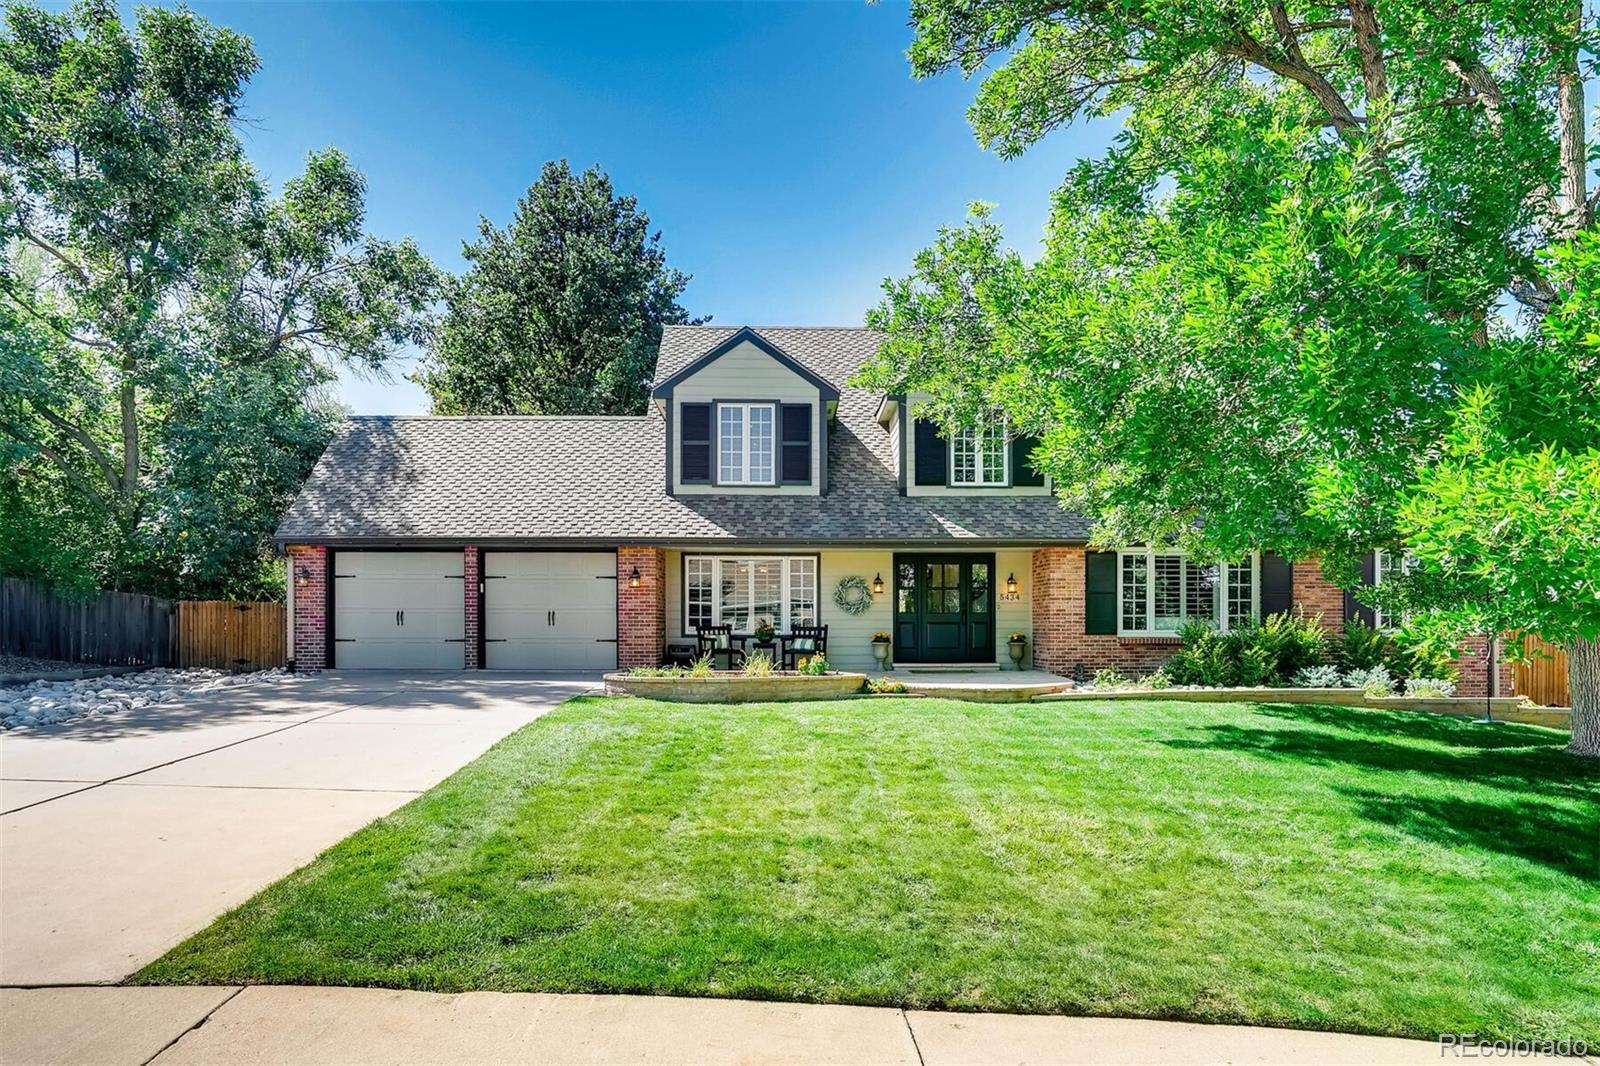 5434 E Hinsdale Circle, Centennial, CO 80122 - MLS#: 8867129